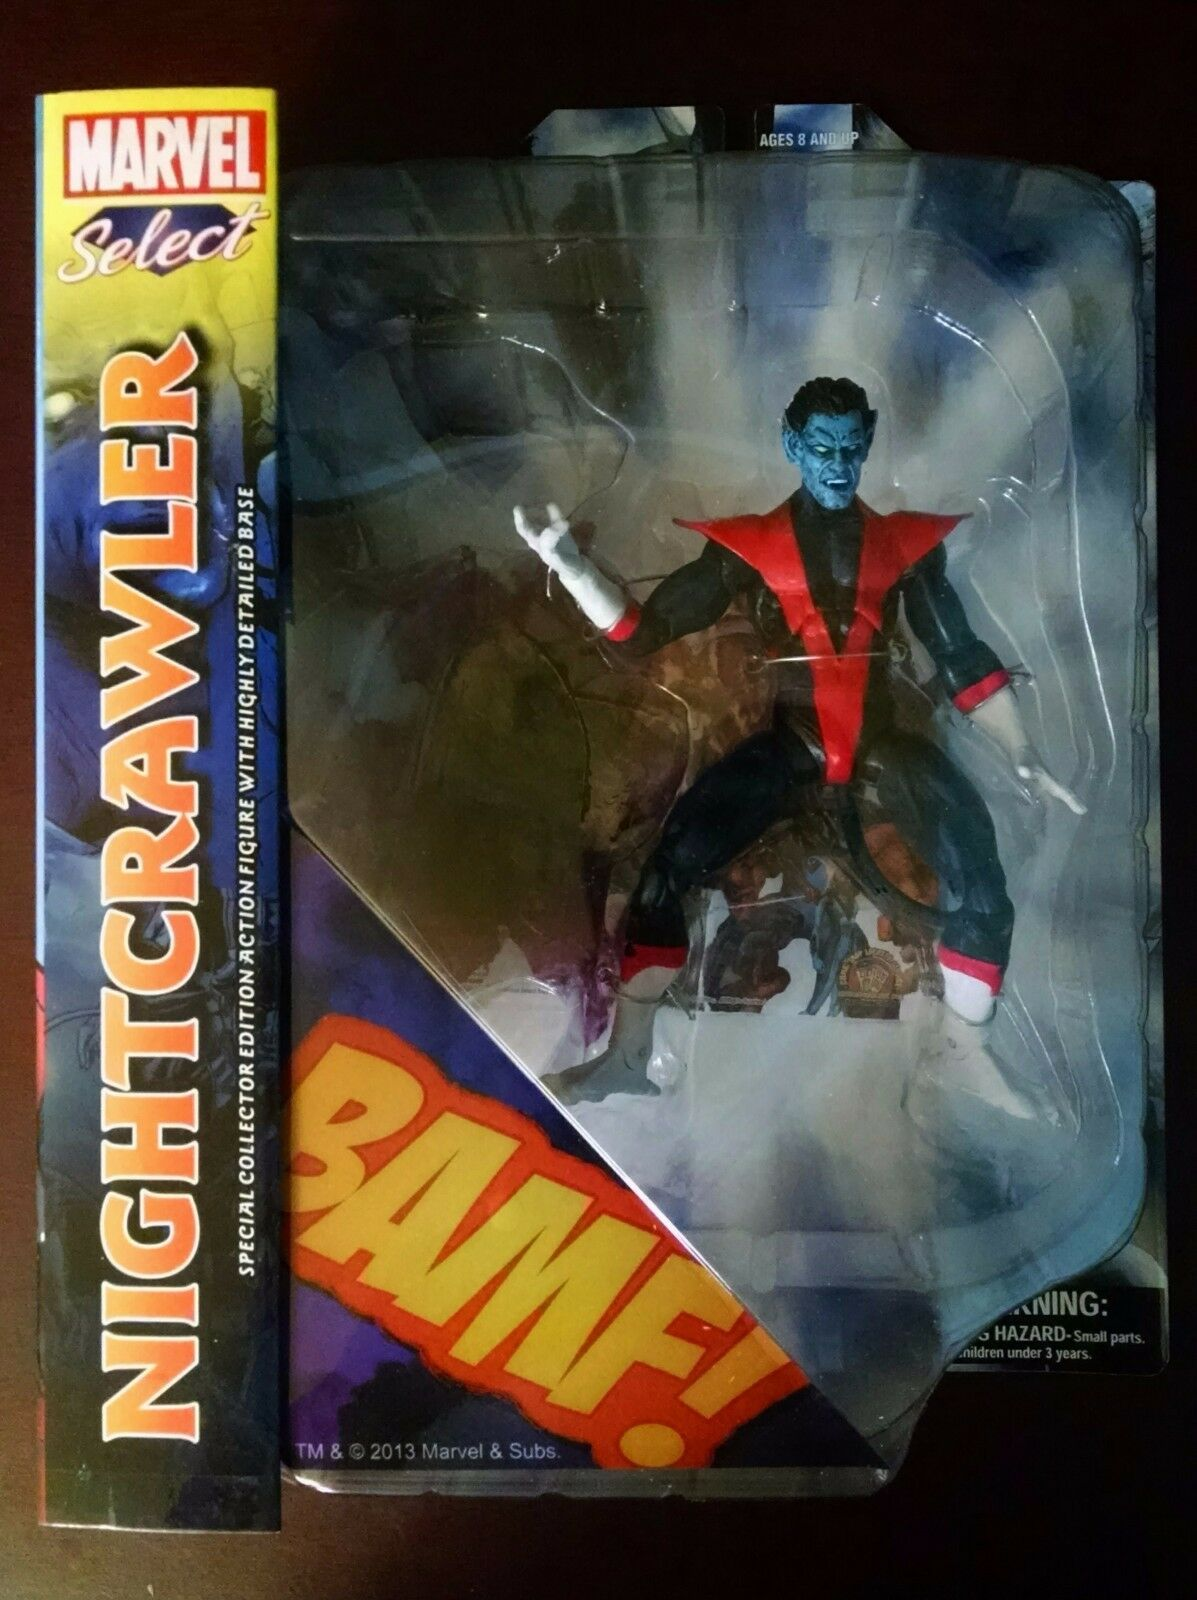 Diamond marvel wählen nightcrawler action - figur - seltenen - vhtf